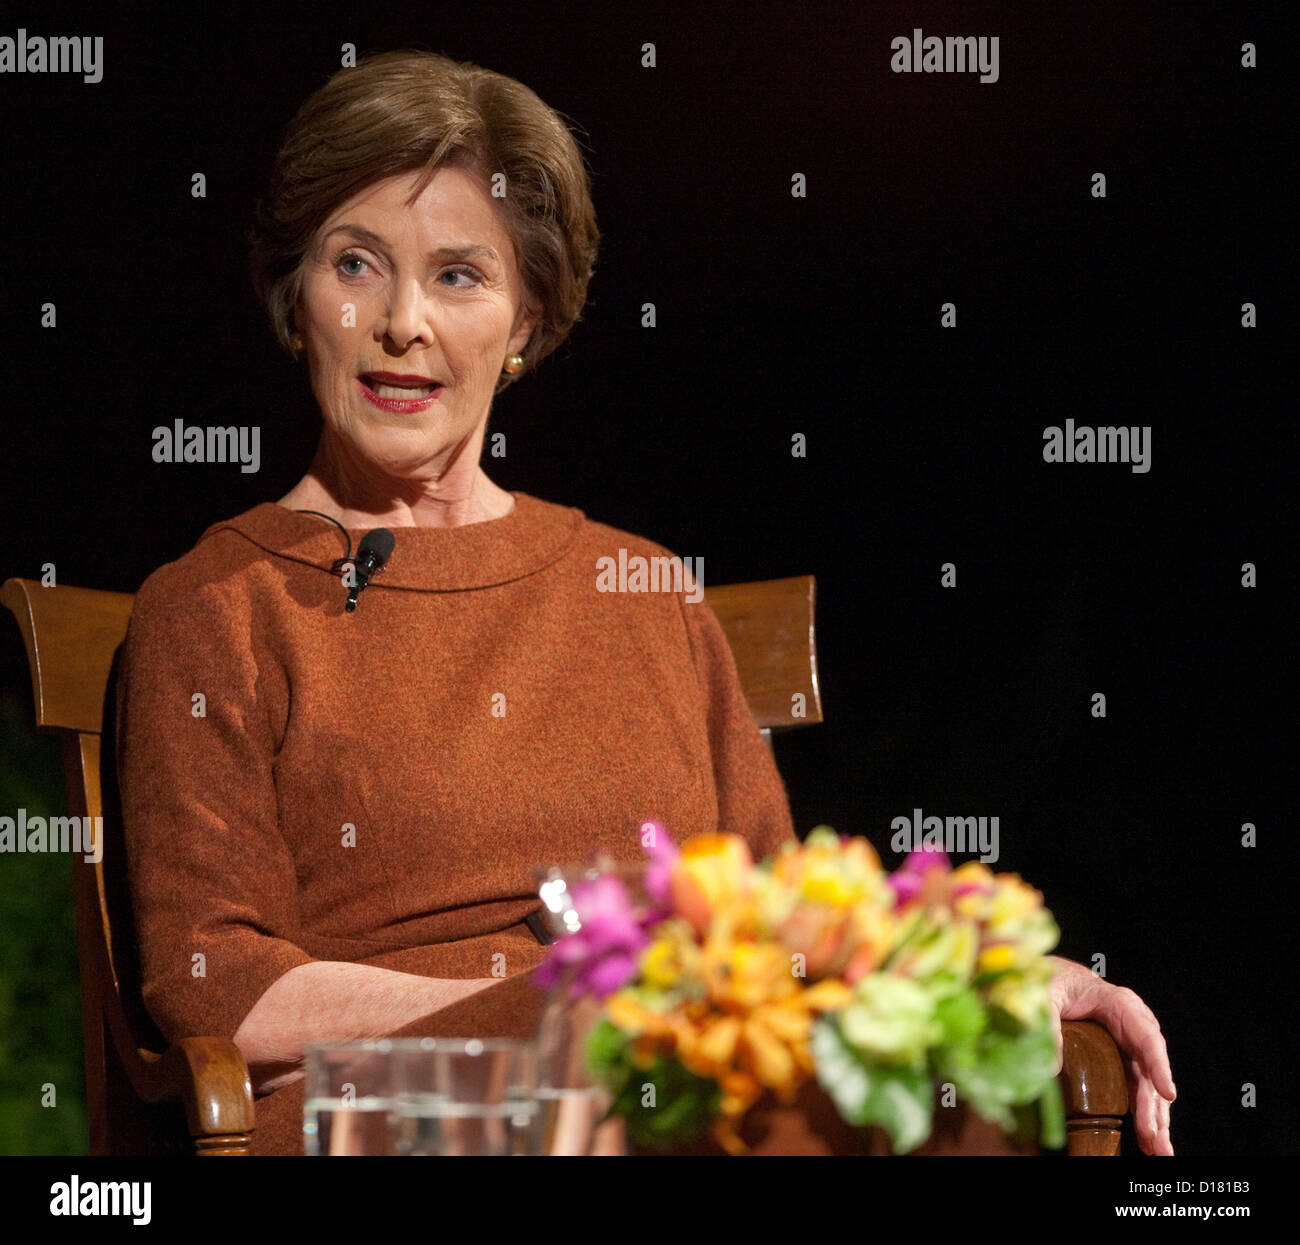 Former First Lady of the United States Laura Bush during conference in Austin, Texas. Wife of George W. Bush Stock Photo